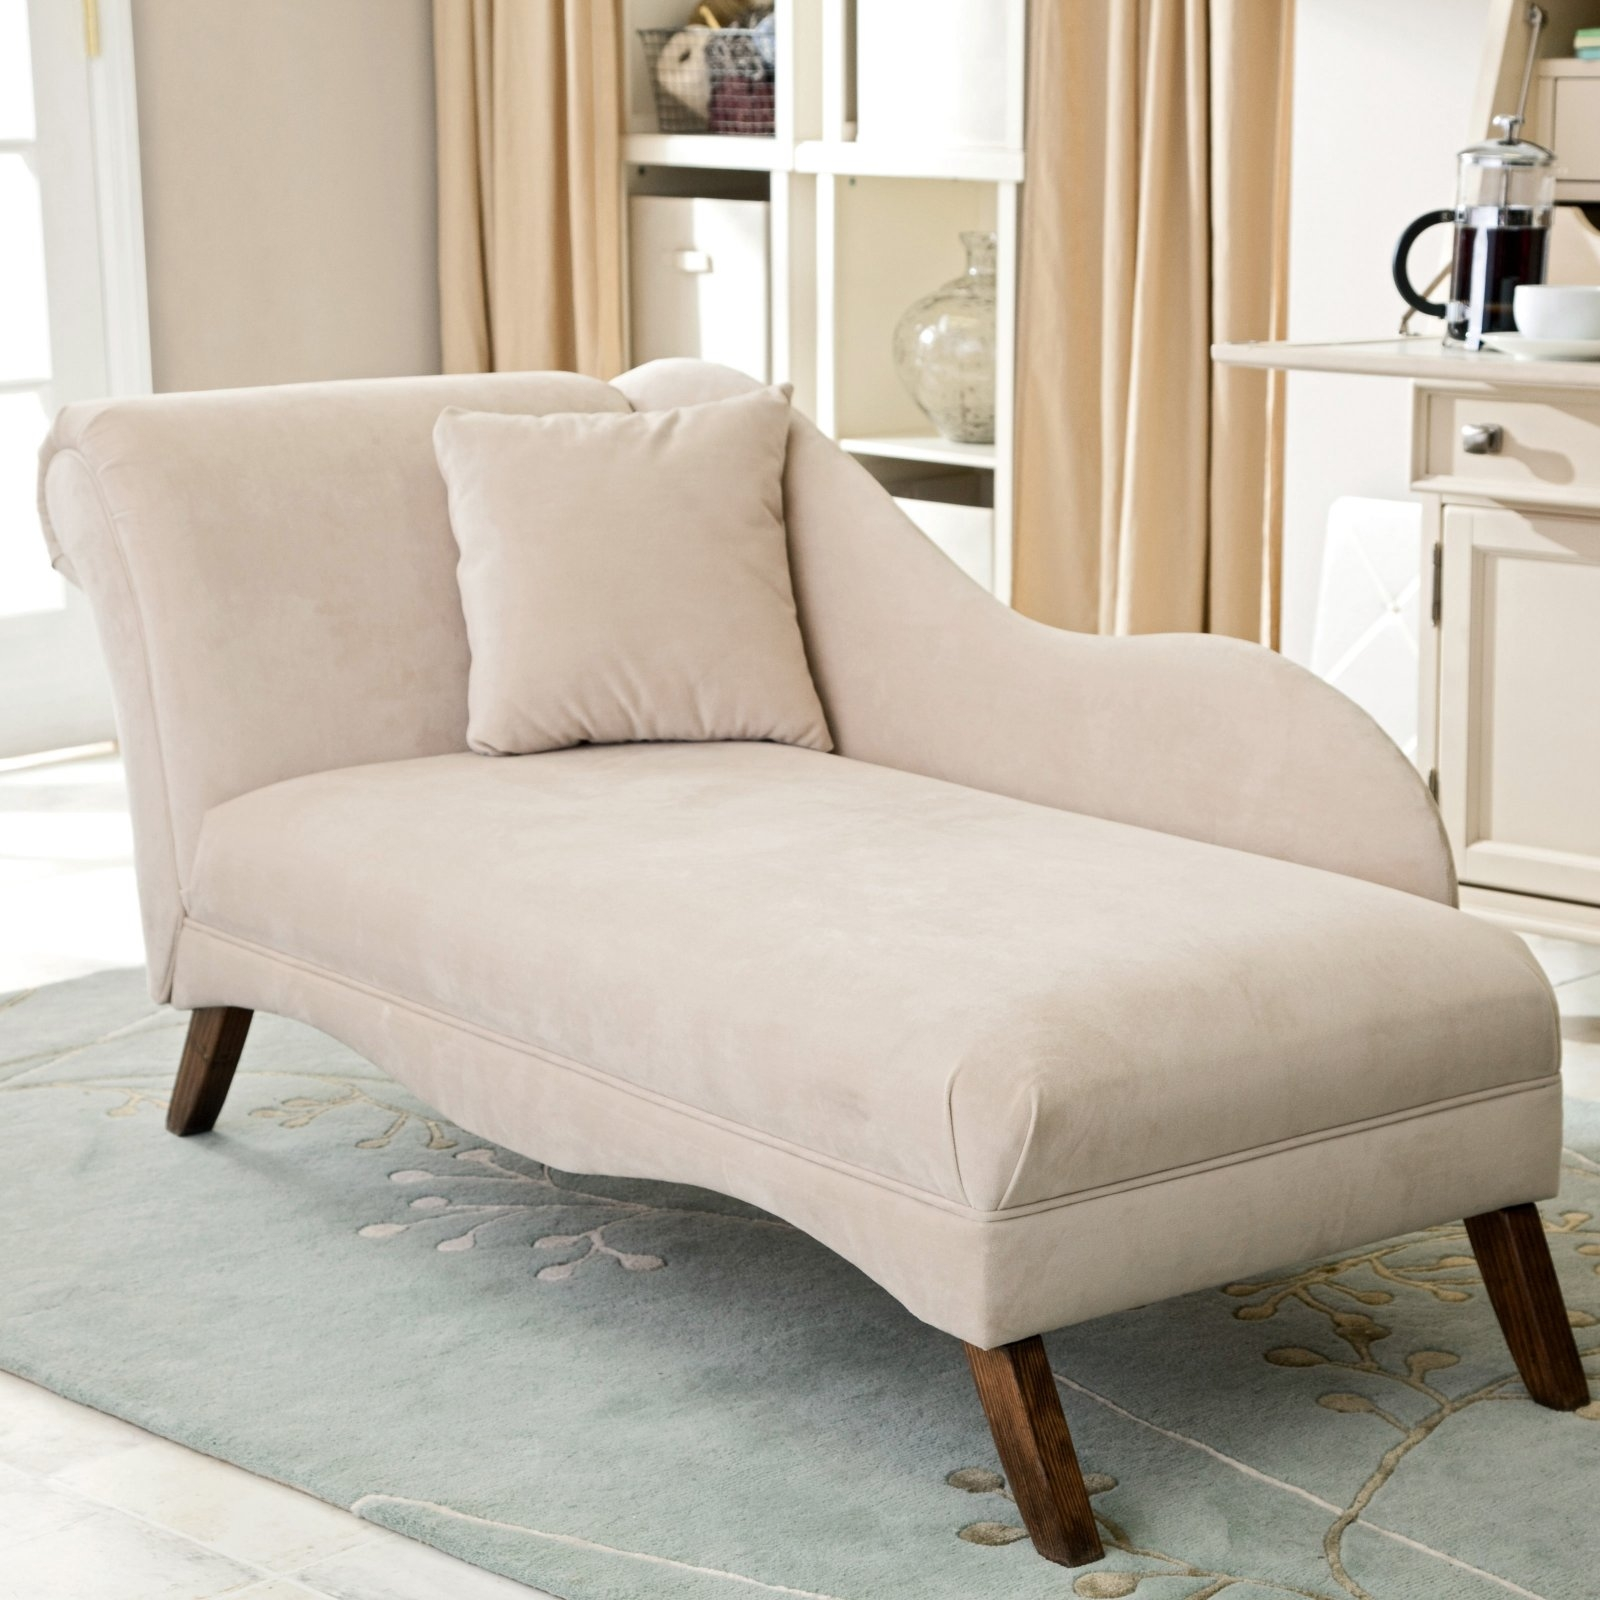 bedroom sofa chair ... sophisticated bedroom design with adorable bedroom sofa furniture ... YOVLBFP